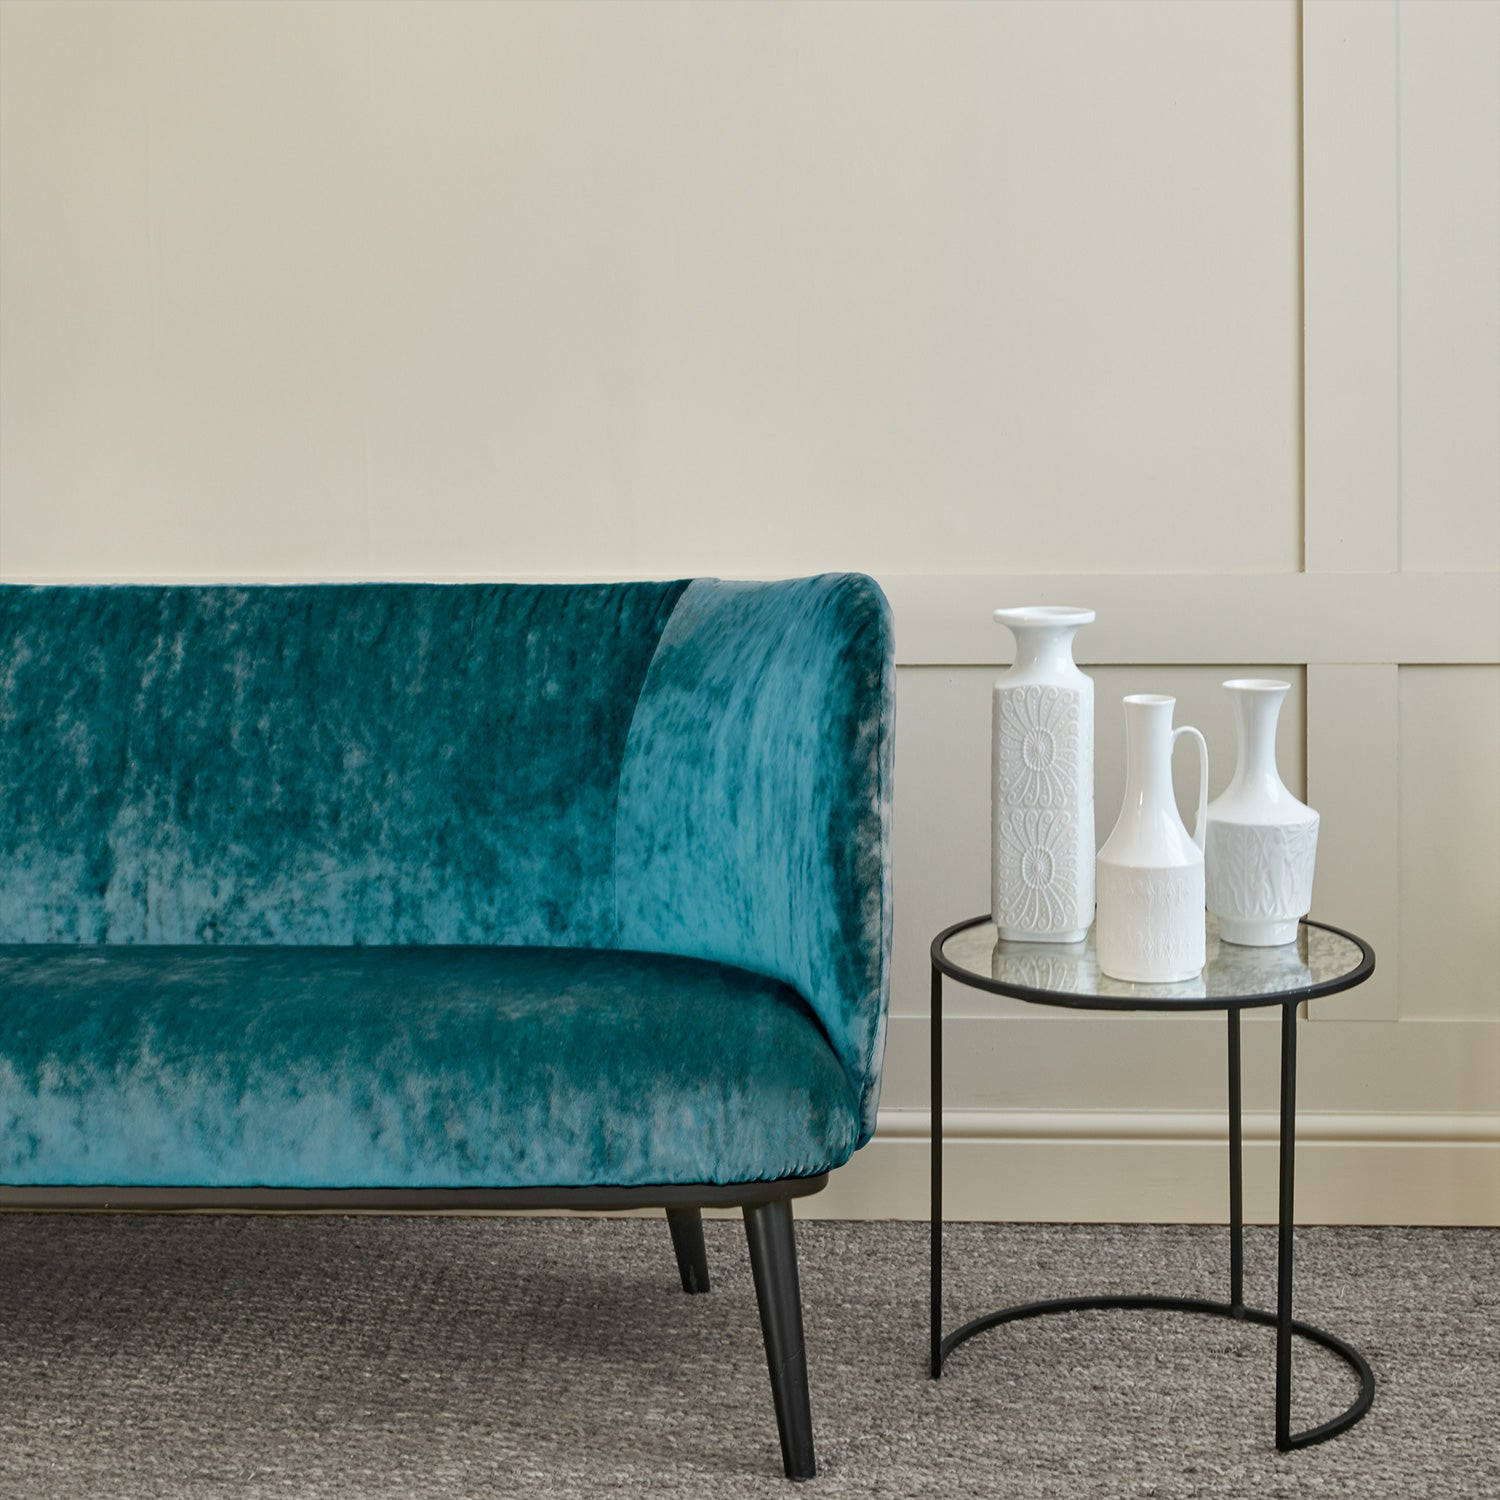 Sofa in a teal stain resistant crushed velvet fabric, perfect for teal crushed velvet sofa and curtains